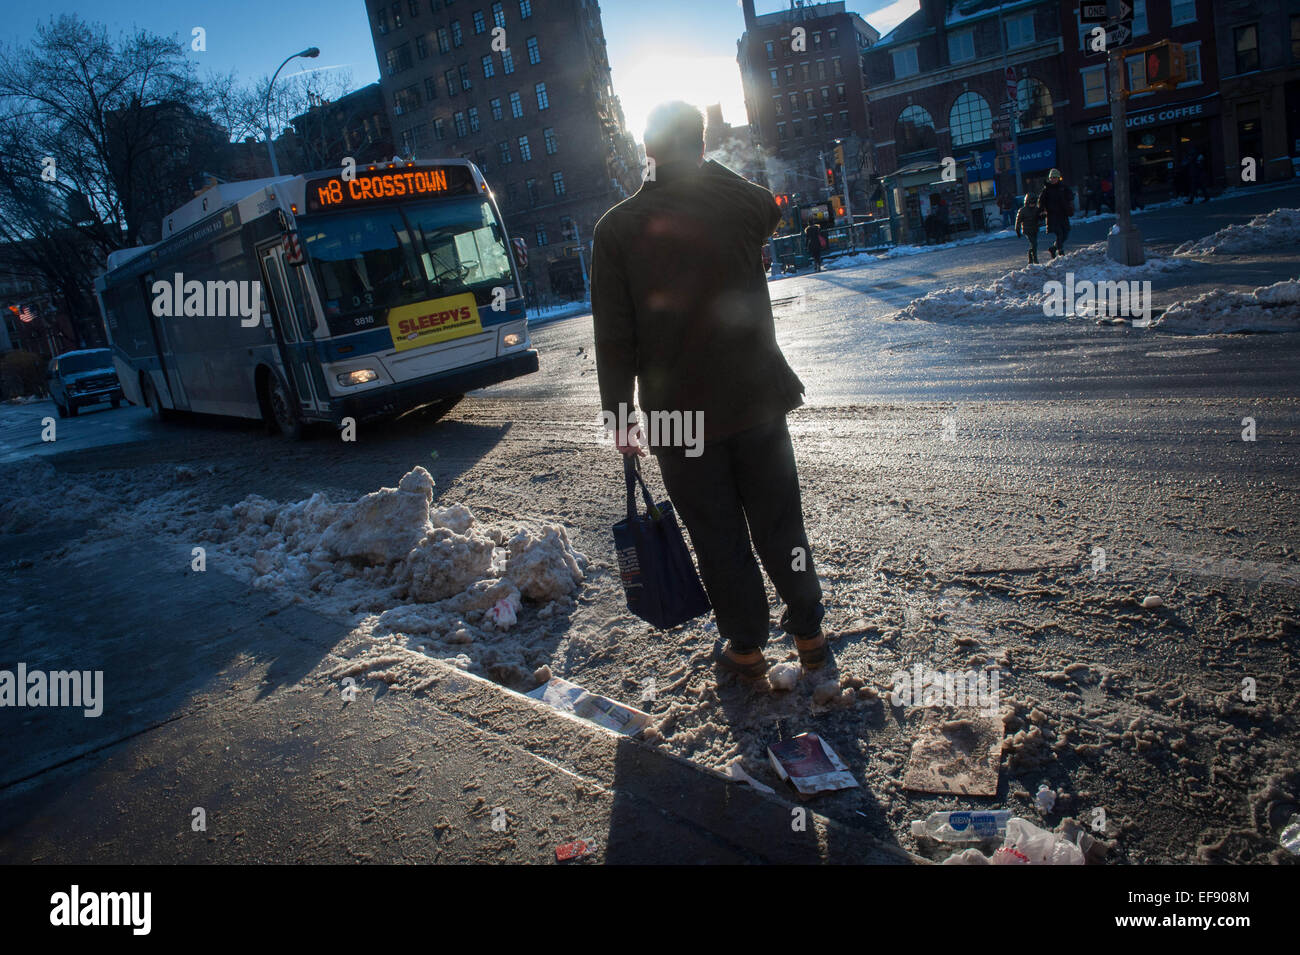 Jan. 28, 2015 - Manhattan, New York, U.S. - A commuter hails a crosstown bus in the West Village following the snowstorm - Stock Image